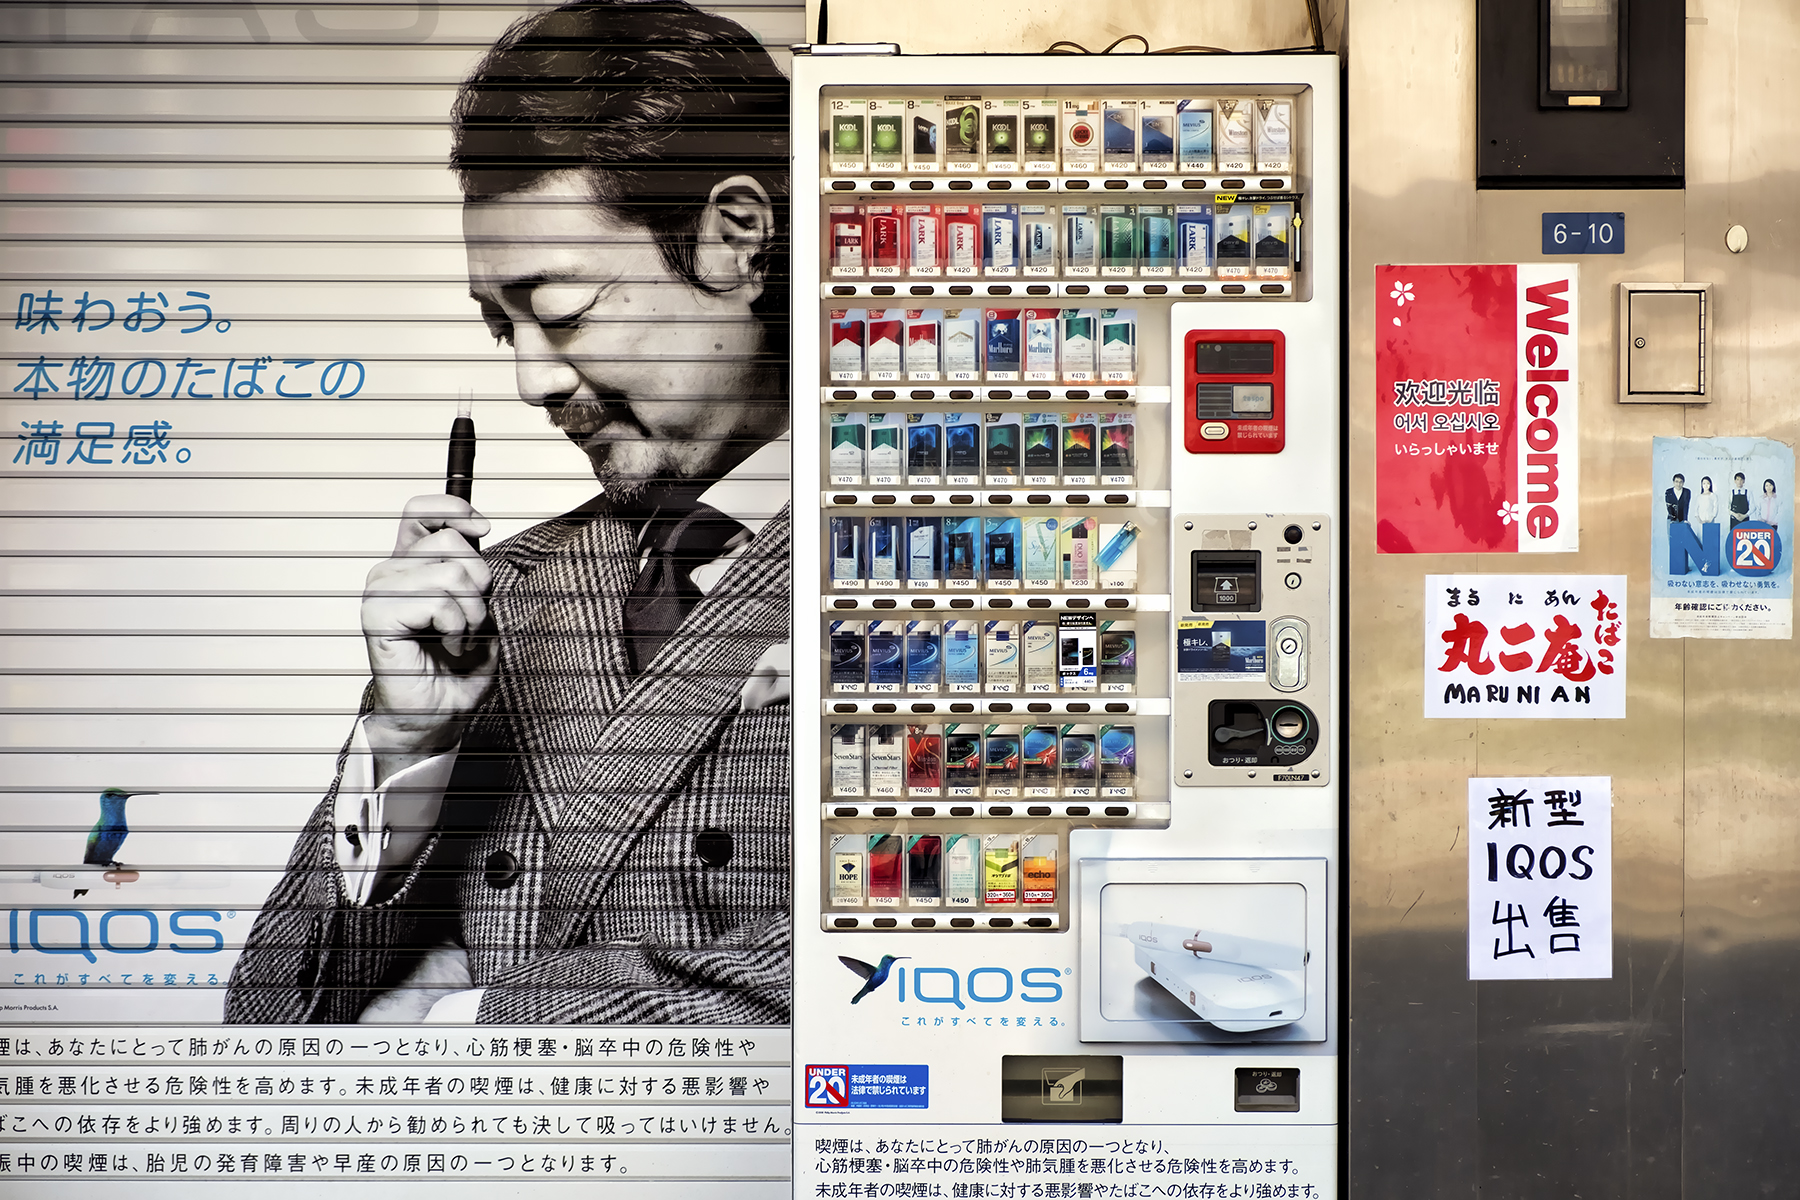 Doug_Caplan_Japanese-Vending-Machines_Untitled_03.jpg